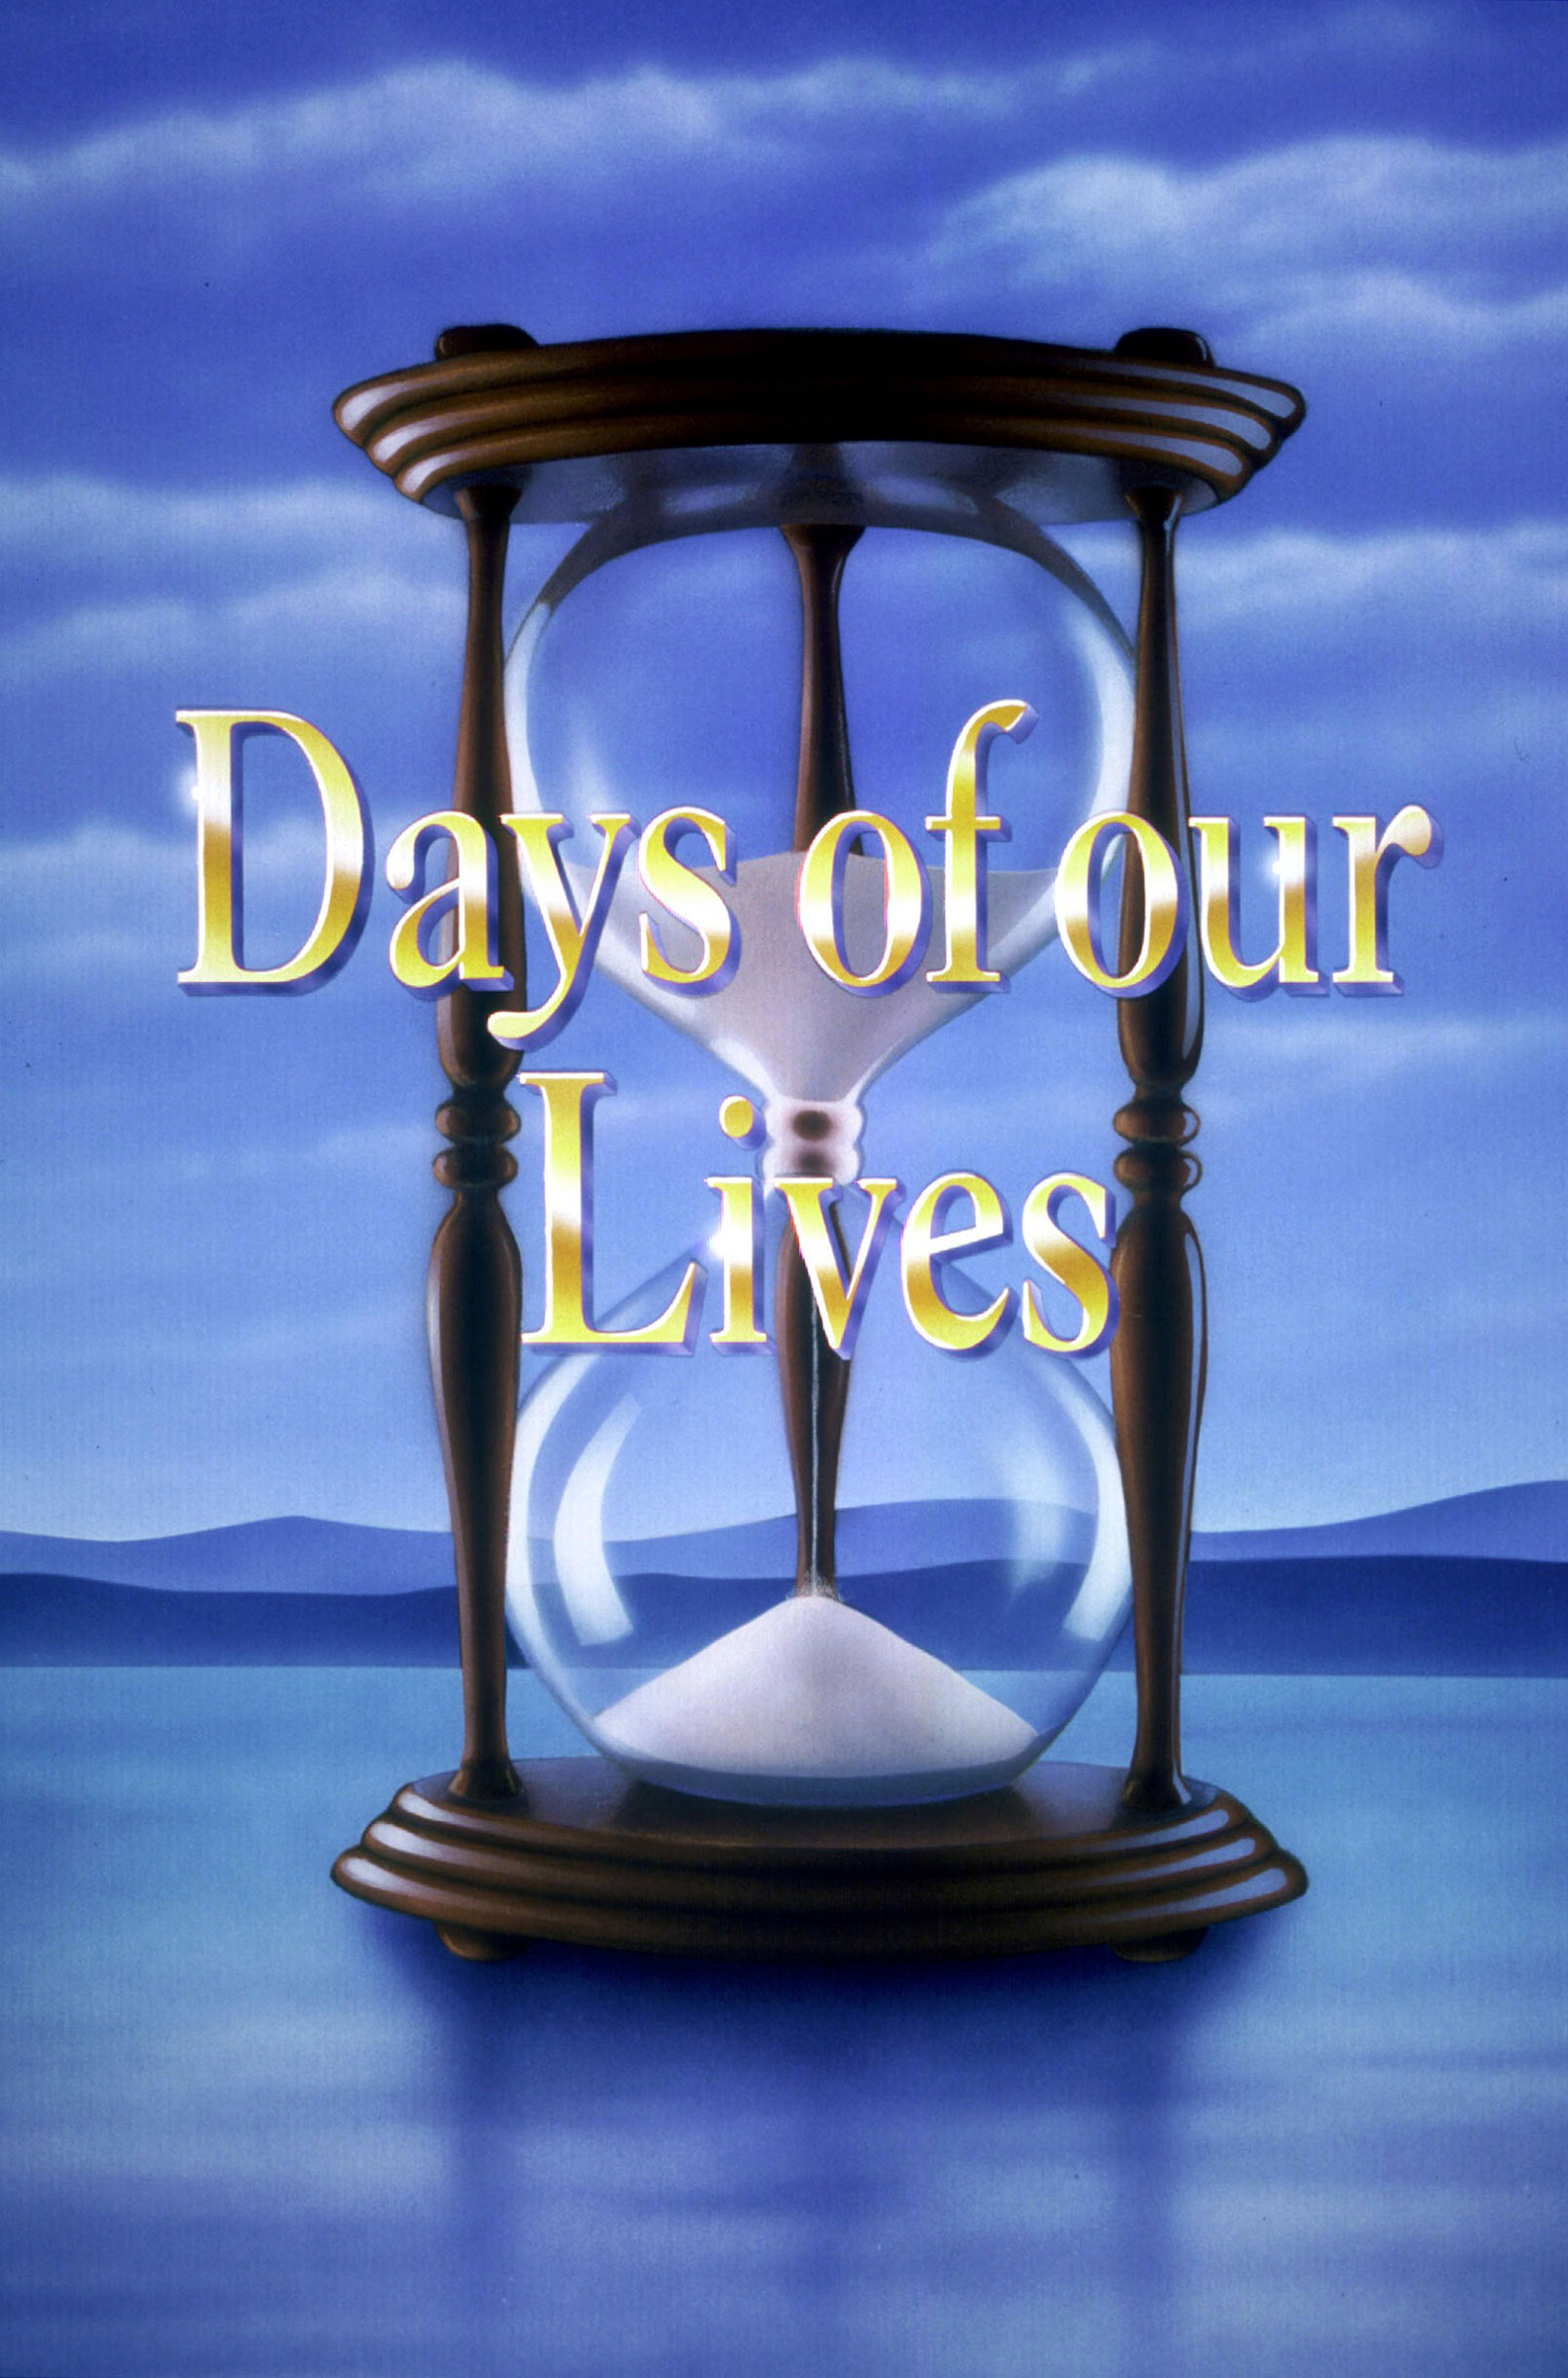 days-of-our-lives-POSTER@2x.jpg